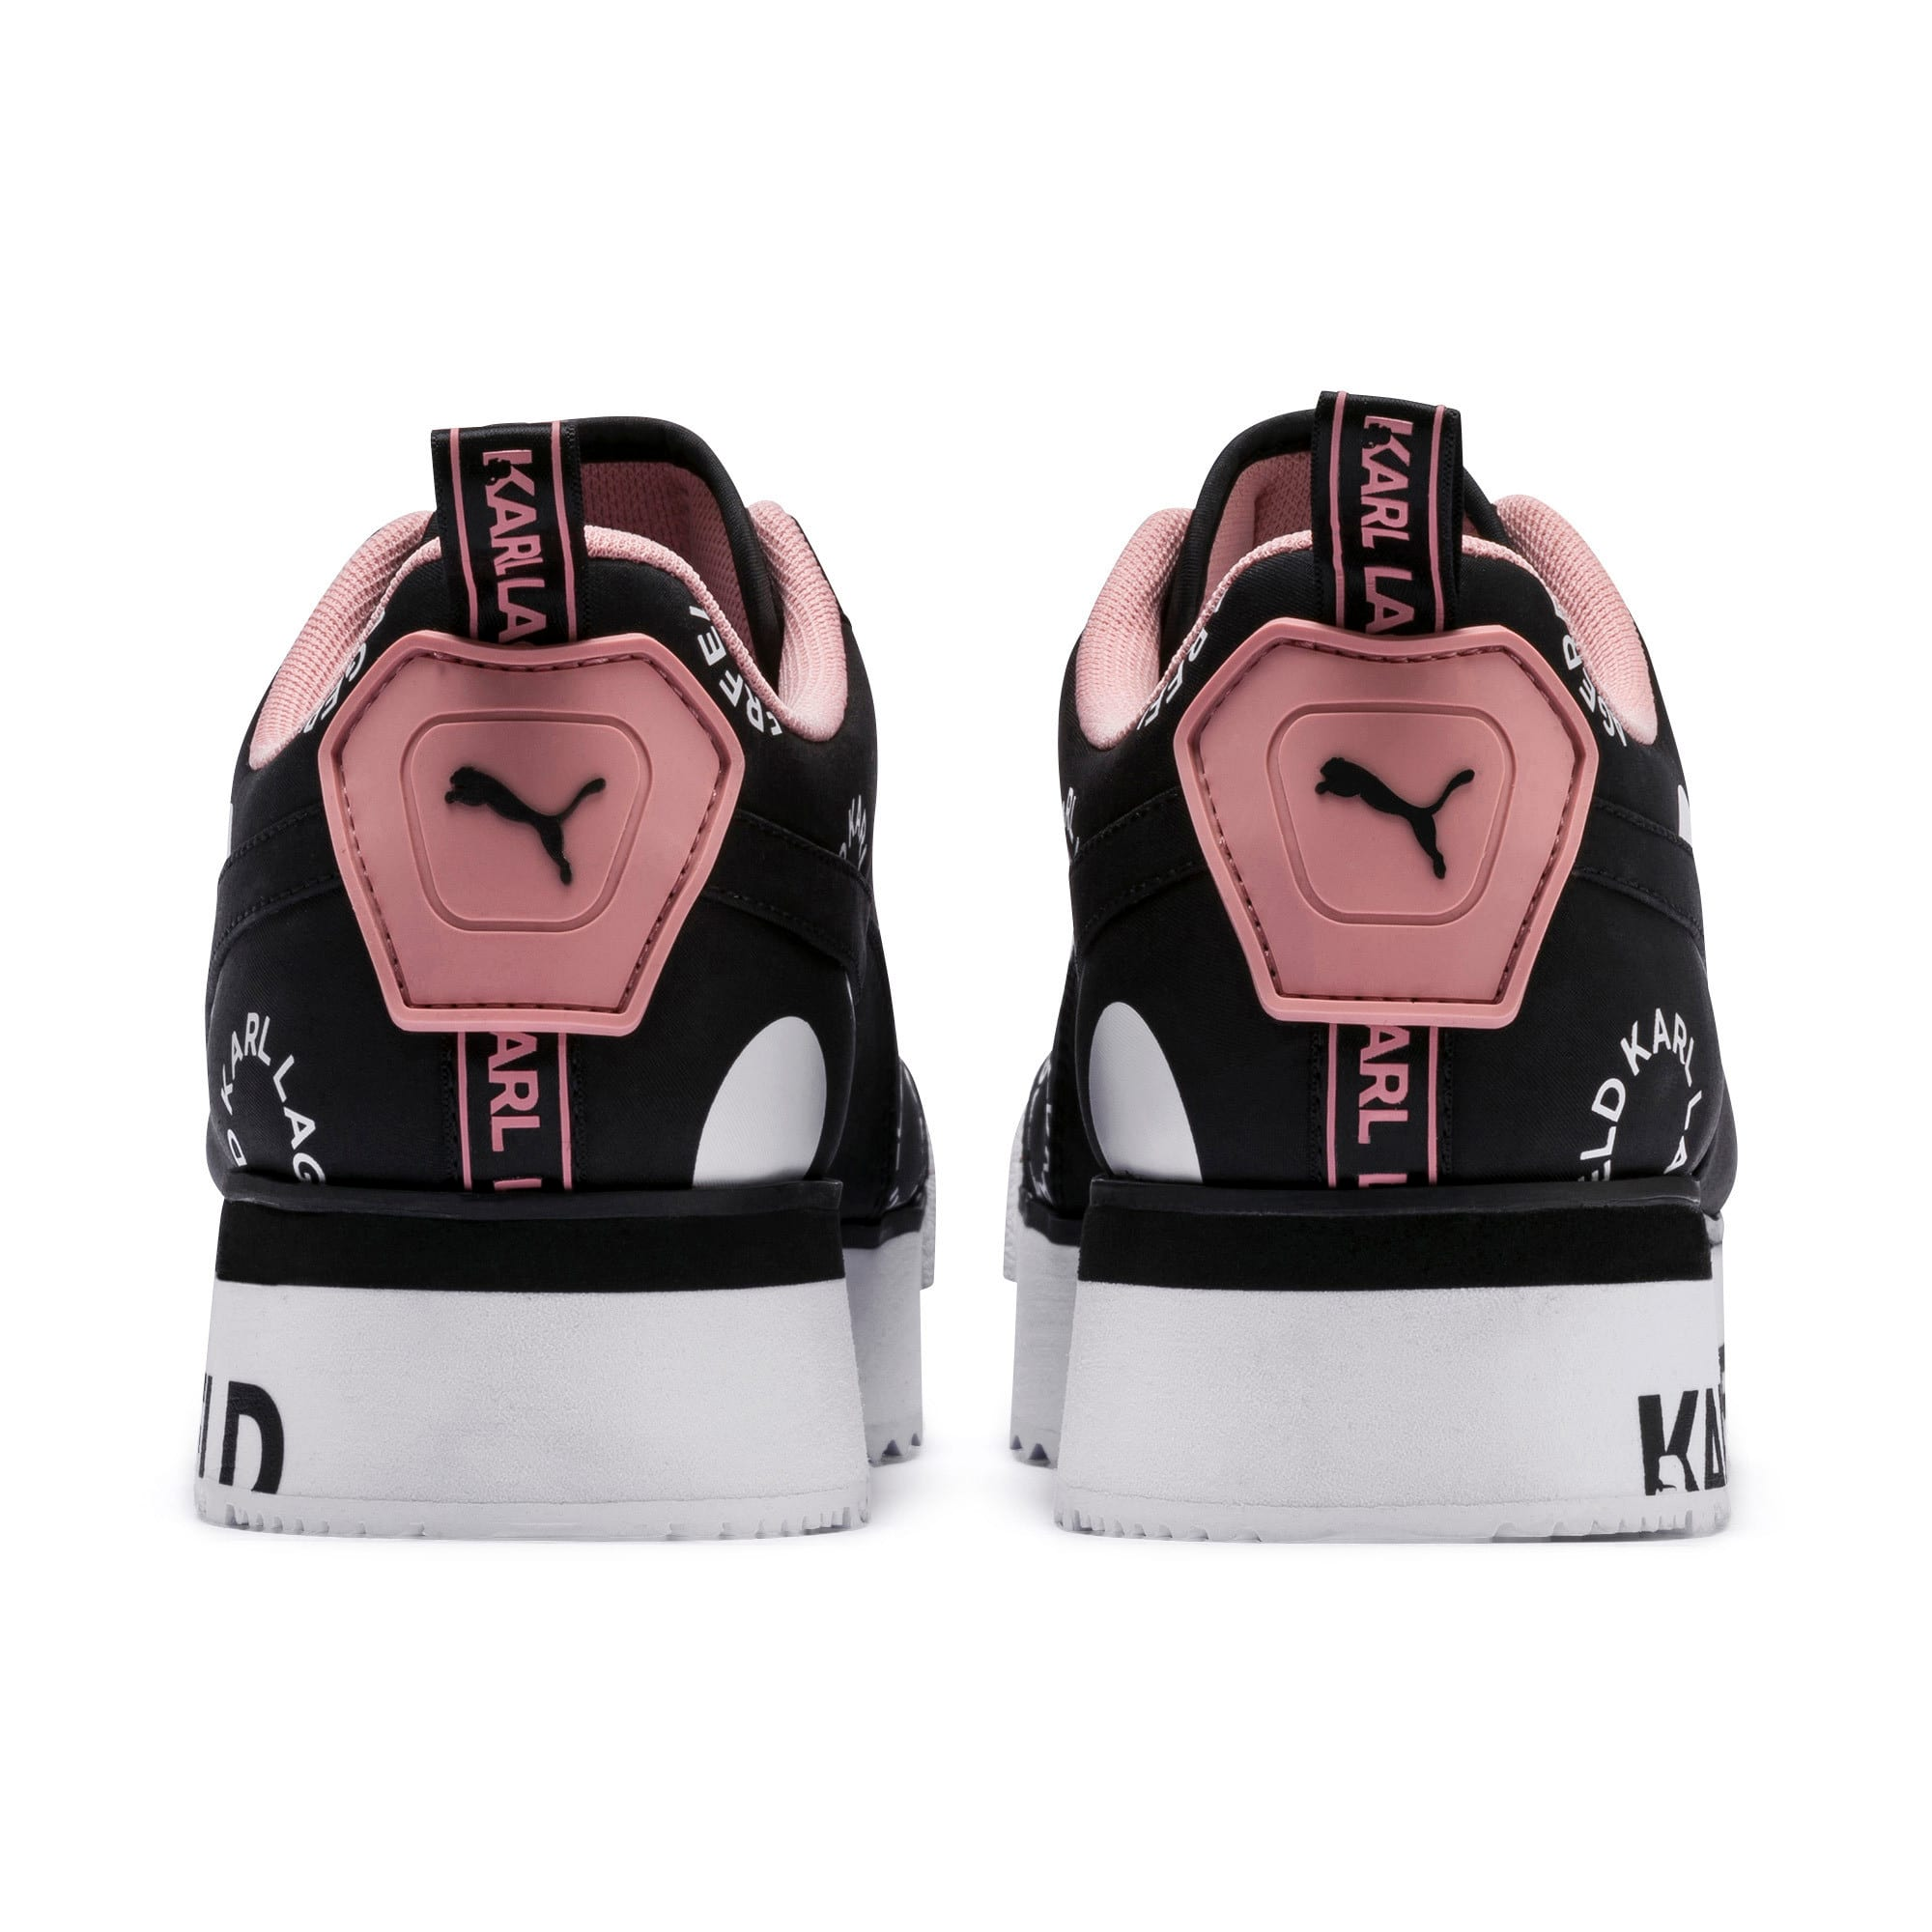 Thumbnail 3 of PUMA x KARL LAGERFELD Roma Platform Women's Trainers, Puma Black-Puma white, medium